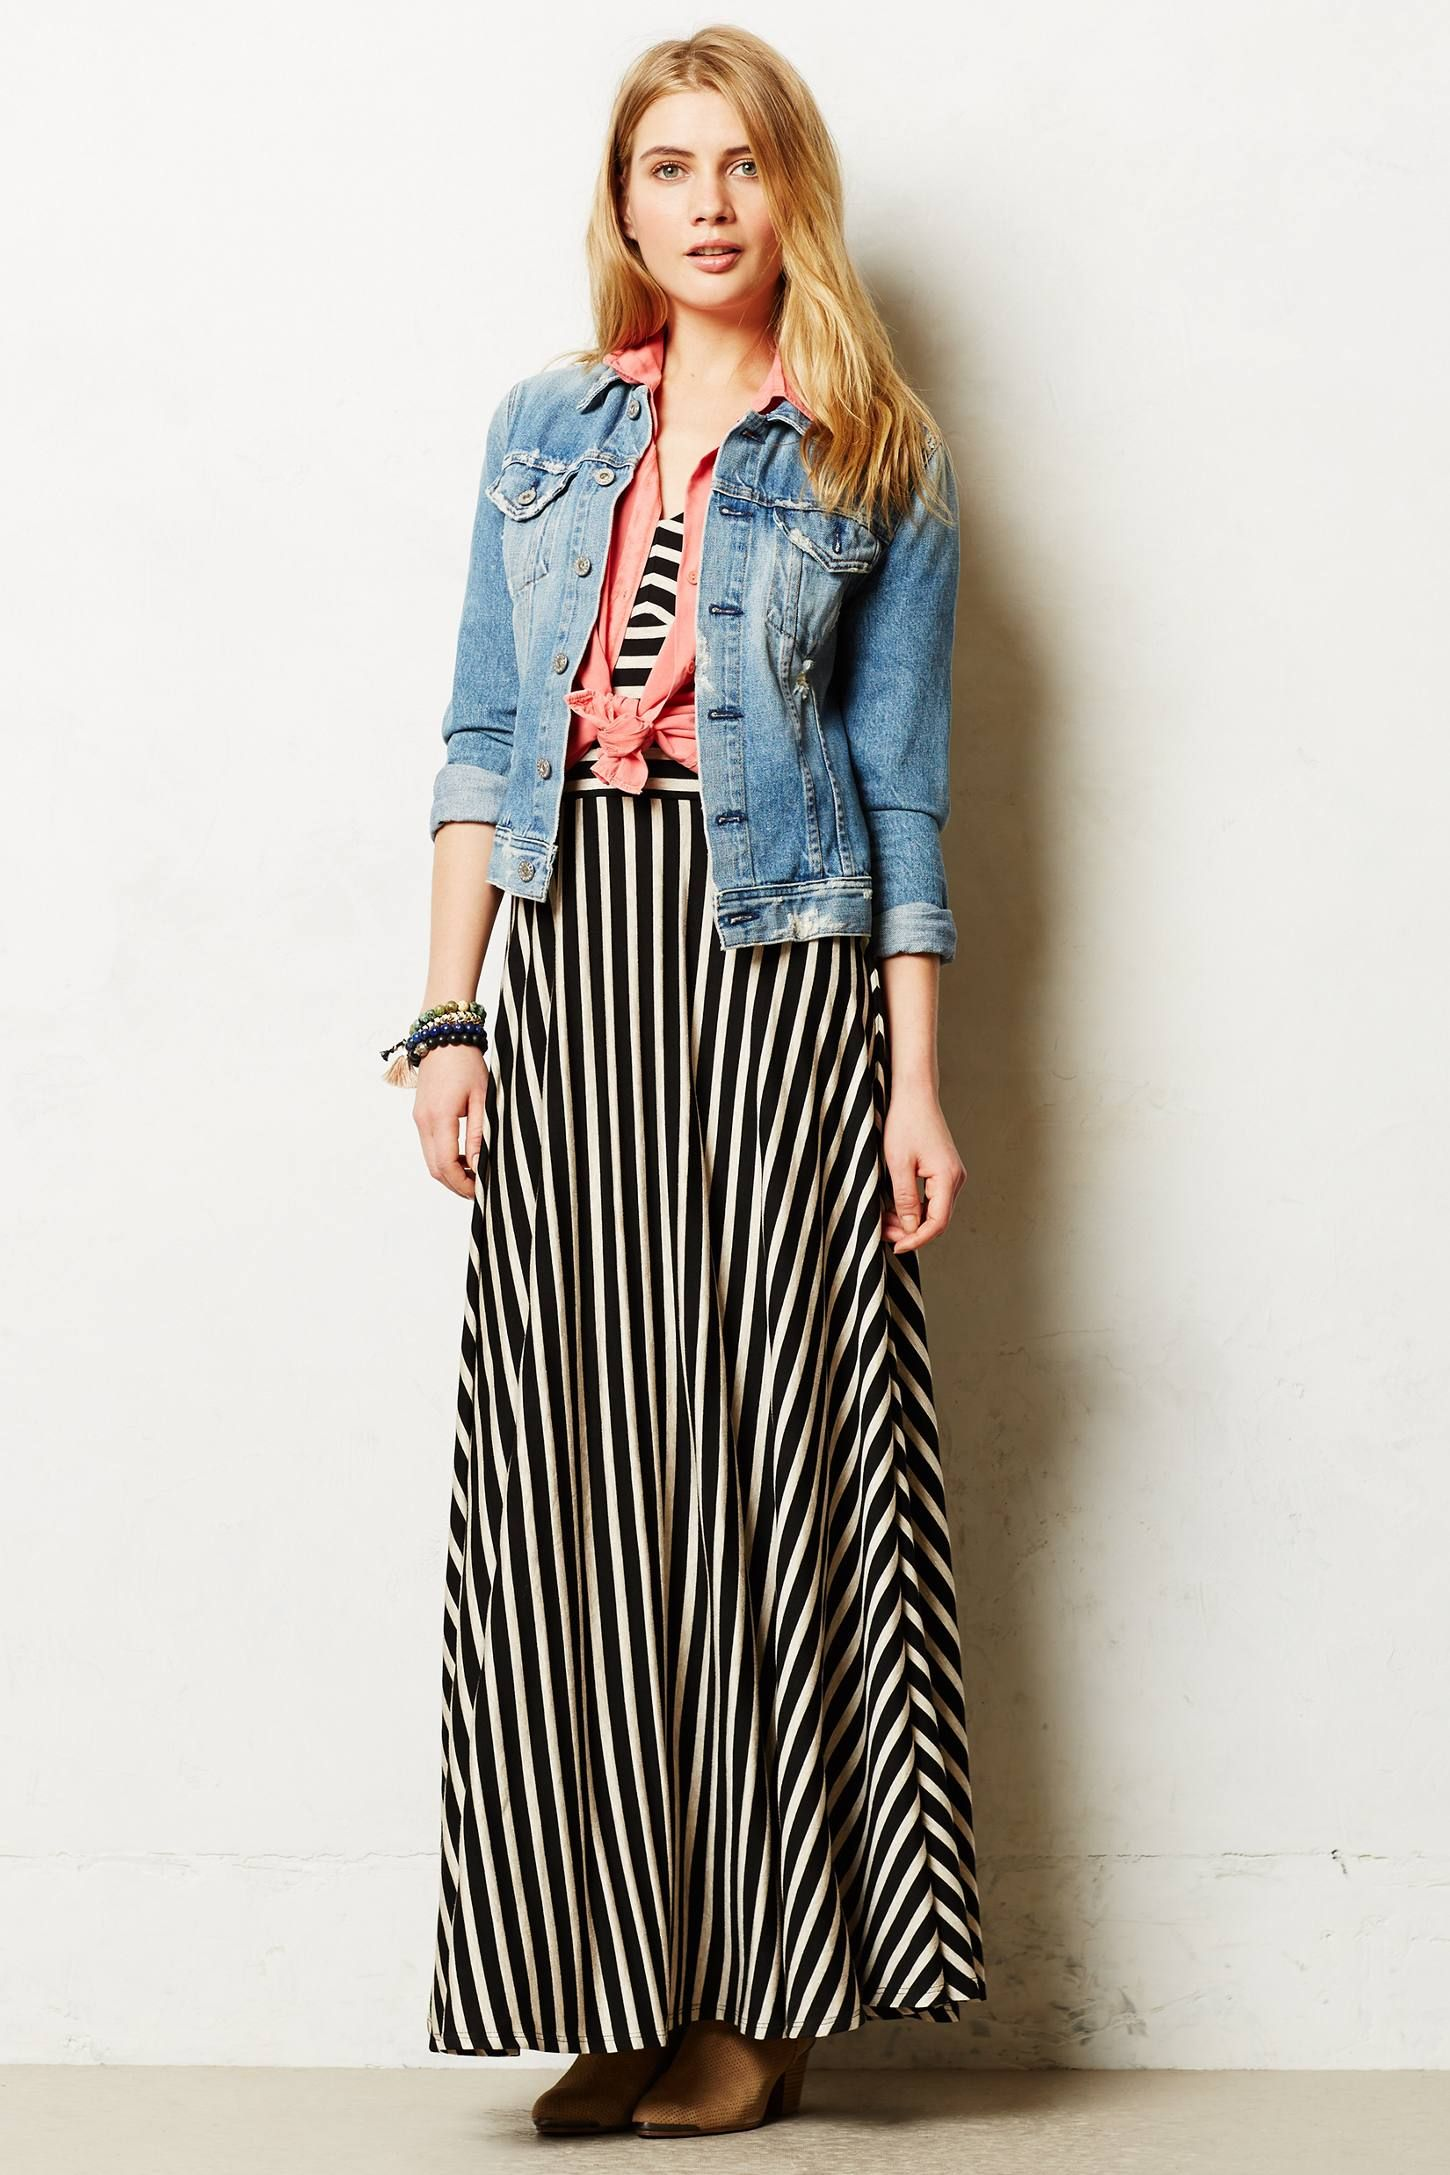 Demarcation maxi dress styled at for Anthropologie mural maxi dress